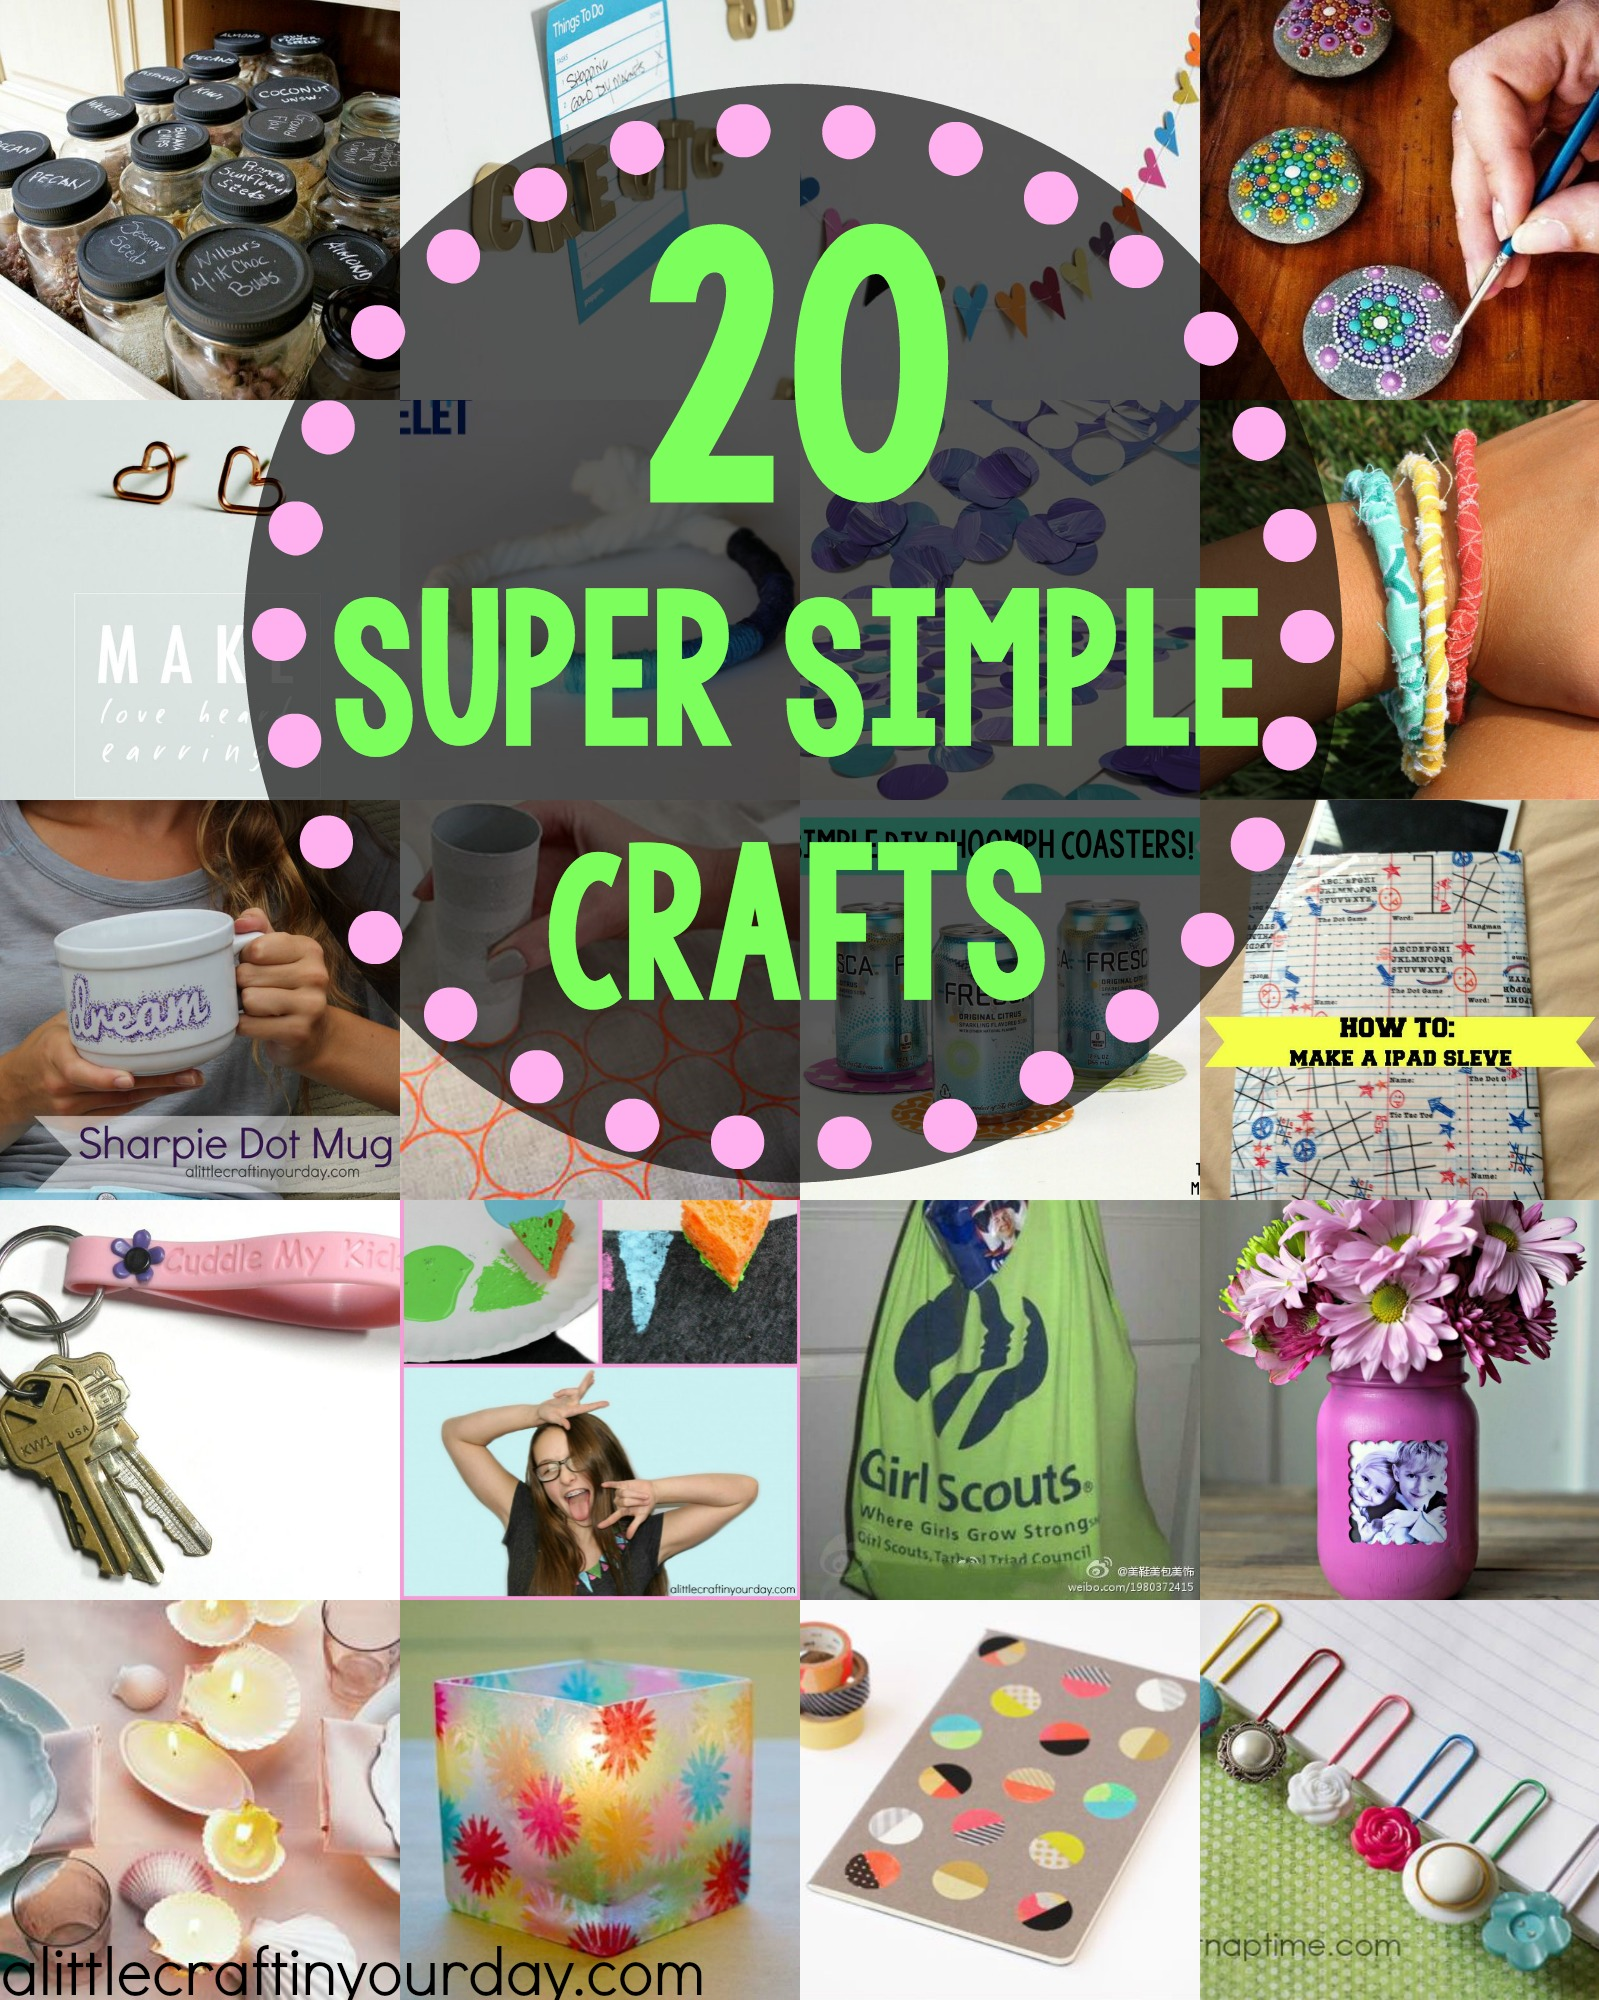 20 Simple Nail Designs For Beginners: A Little Craft In Your Day